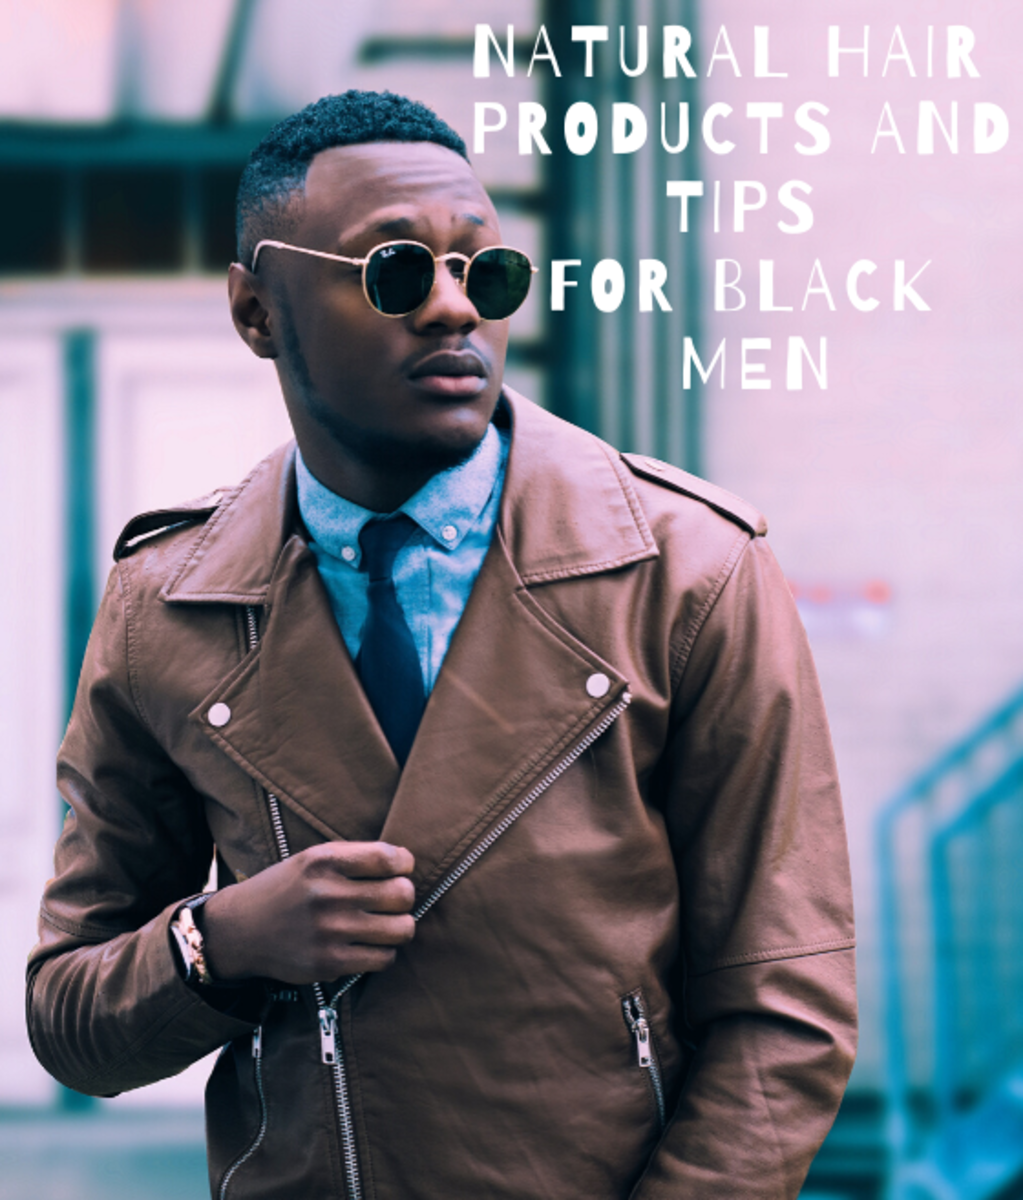 Natural Hair  Products and Tips for Black Men